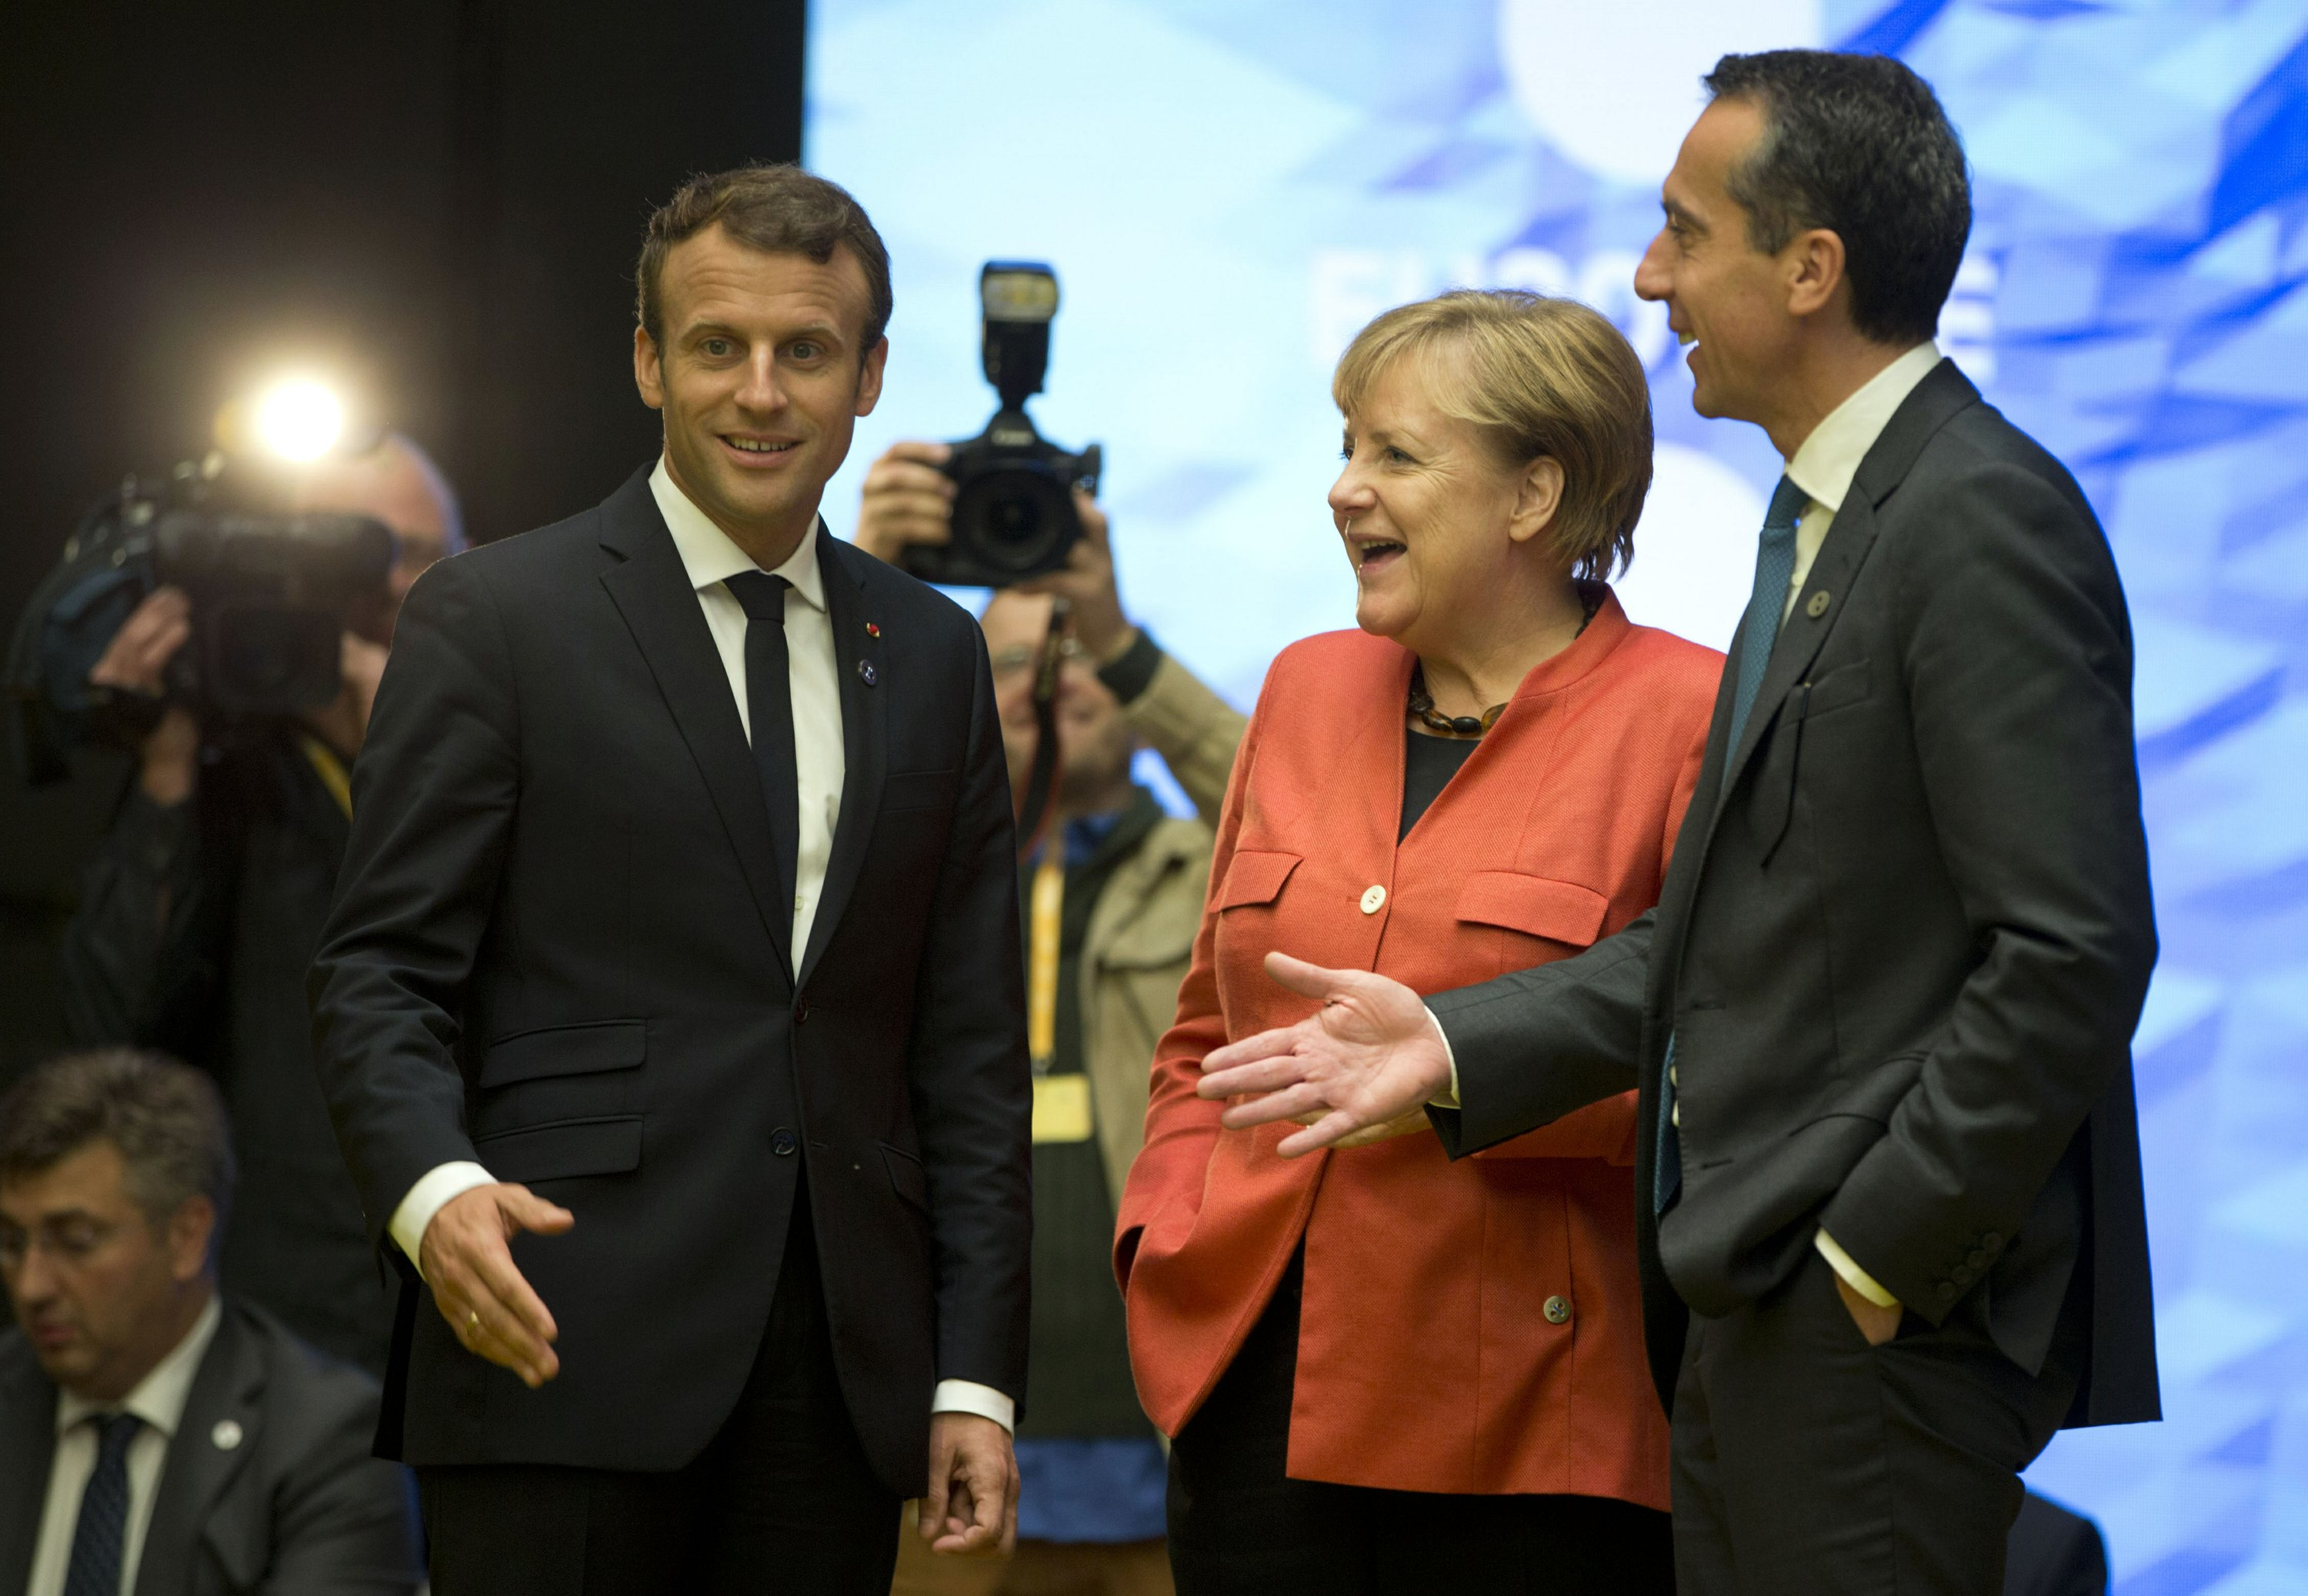 EU moves ahead faster on new future than on Brexit talks